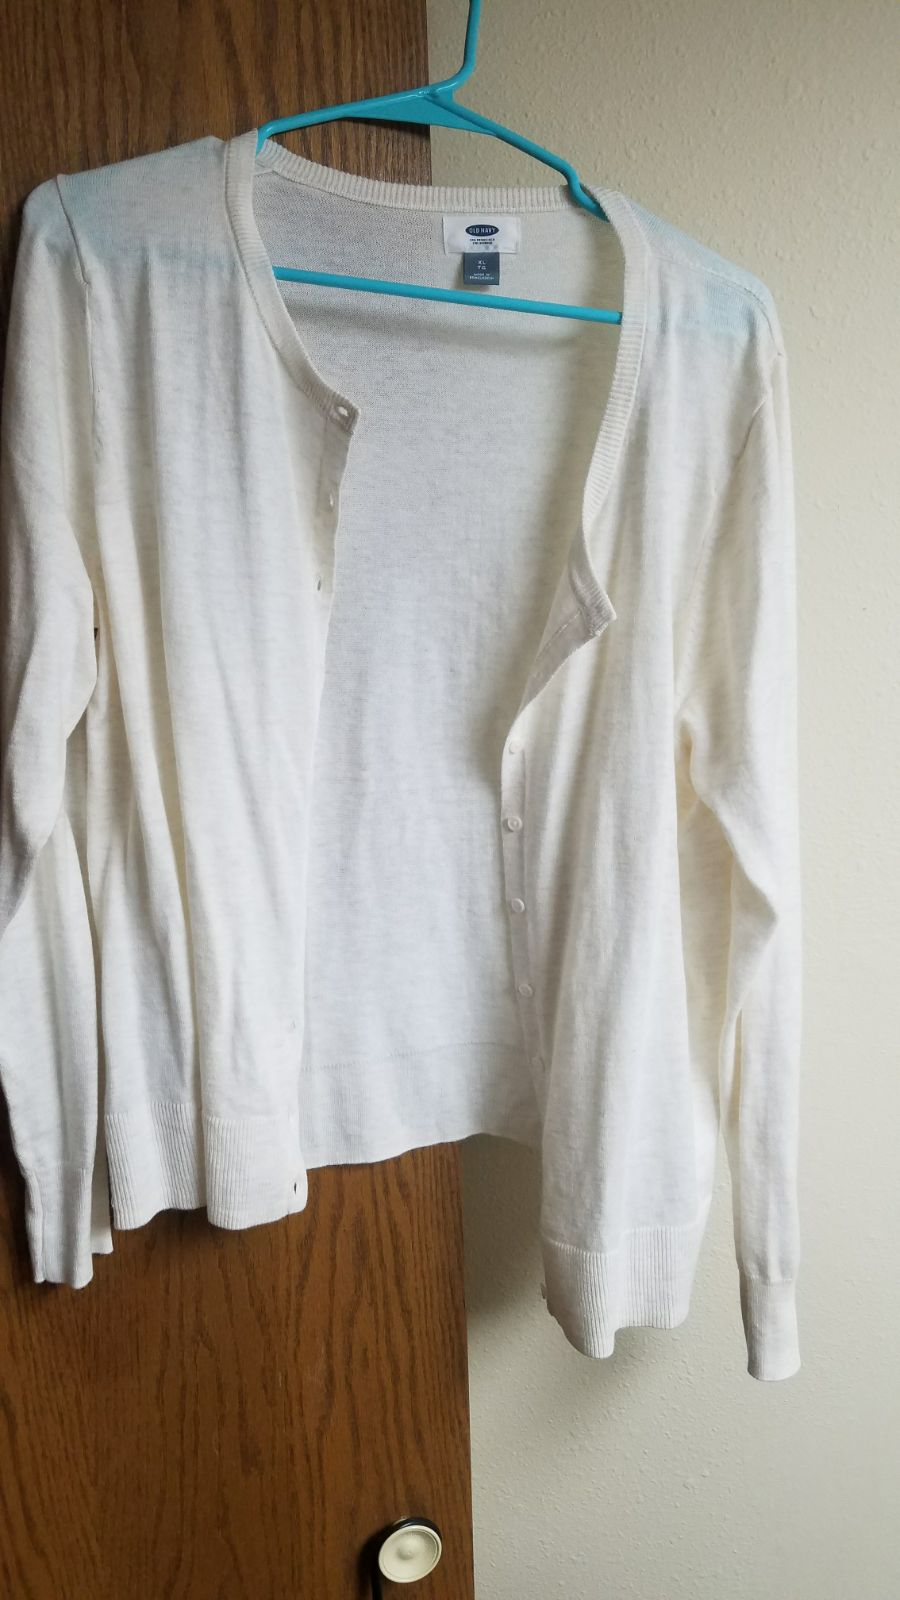 White cardigan button up sweater - Mercari: BUY & SELL THINGS YOU LOVE